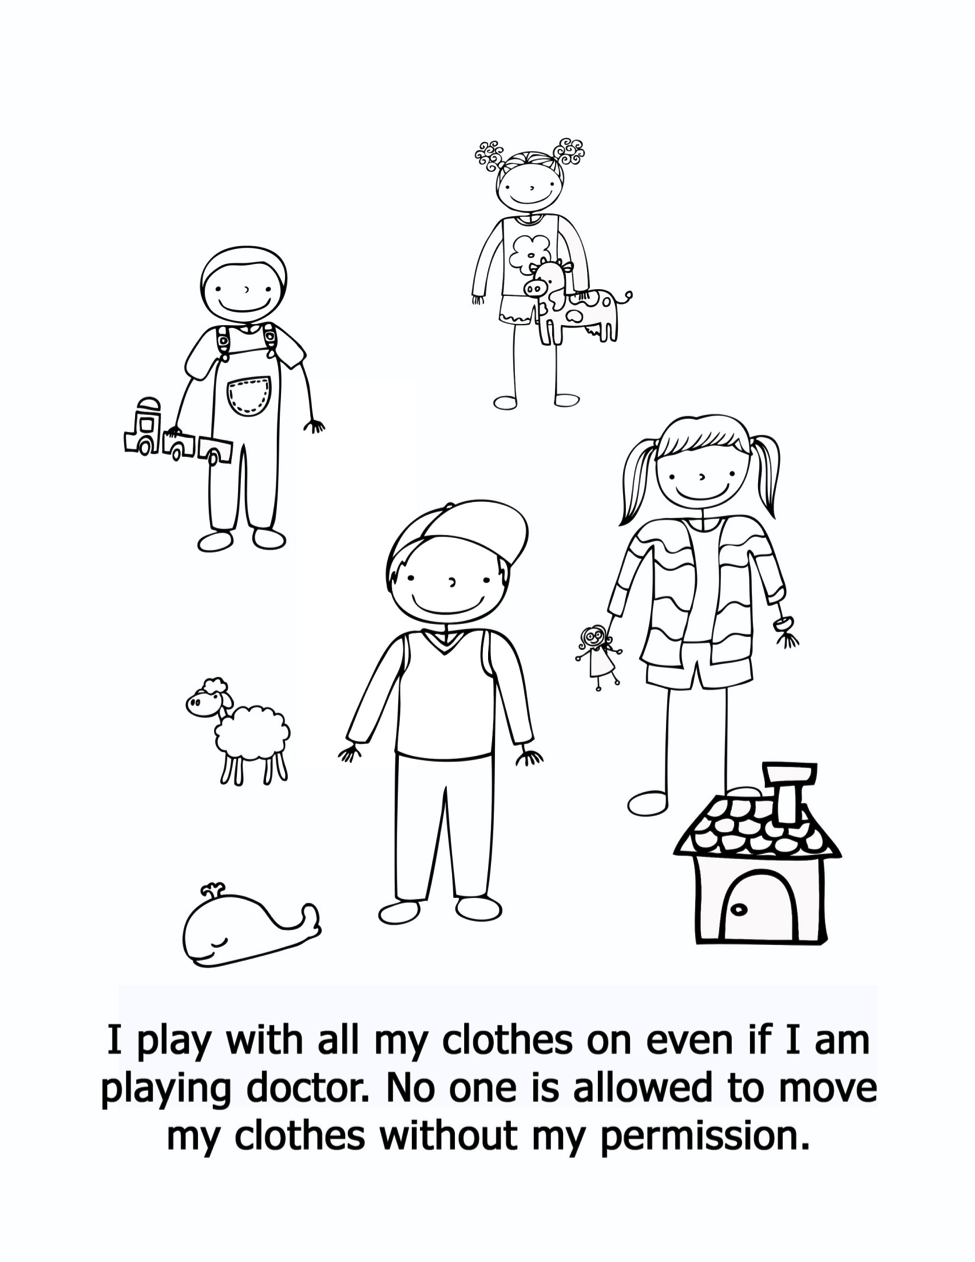 Do not take clothes off coloring page - I Am Safe by Kimberly Rae